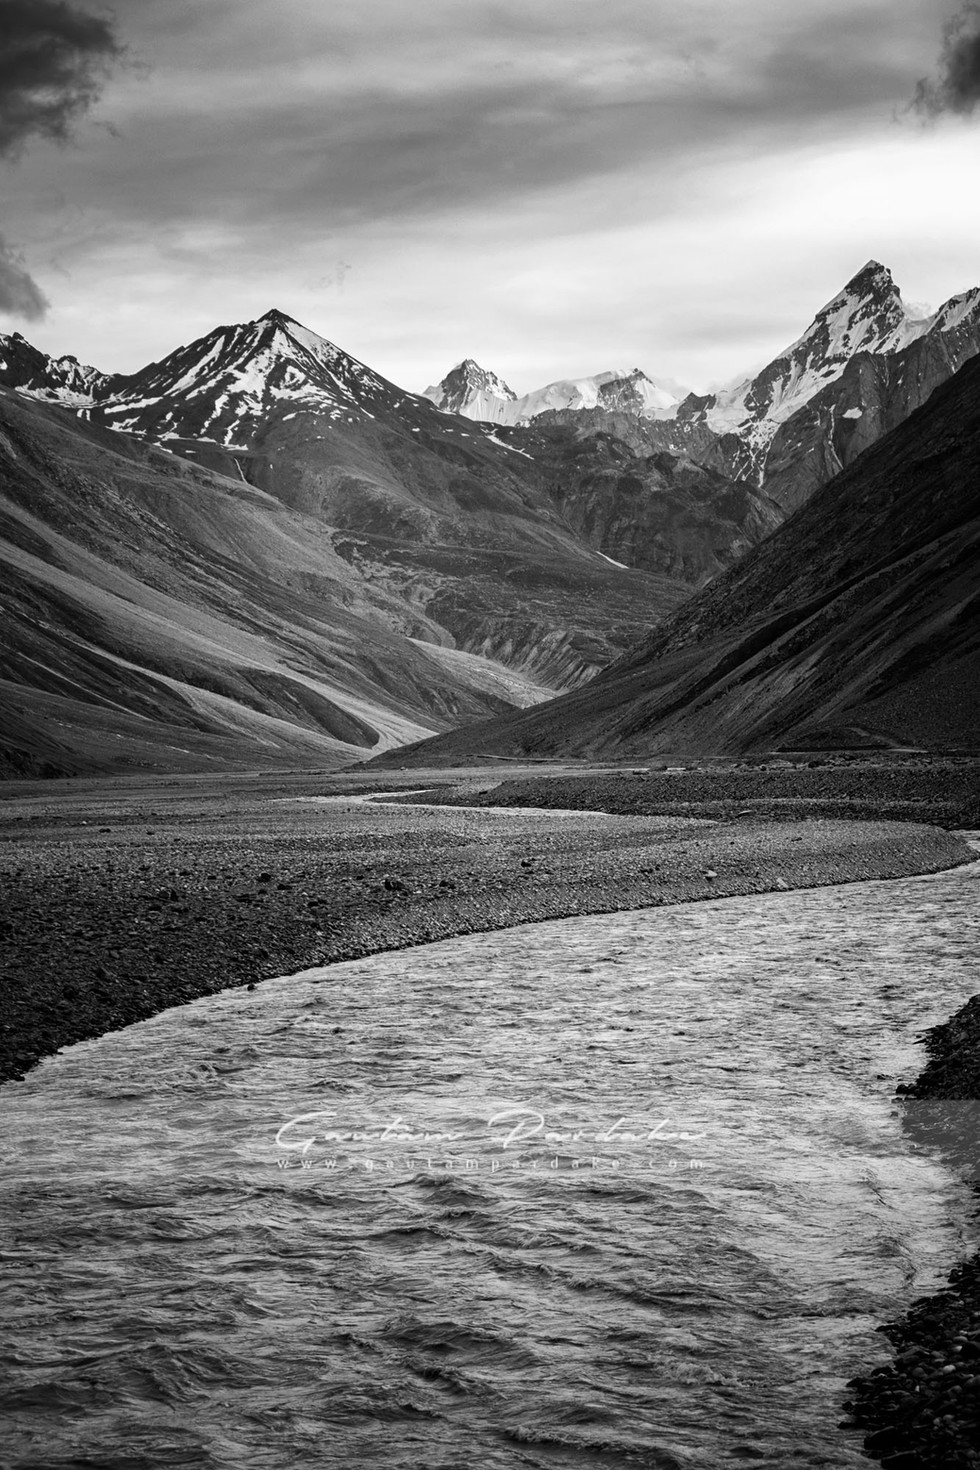 Artistic black and white image of a stream running in the high Himlayan mountains of Spiti, India